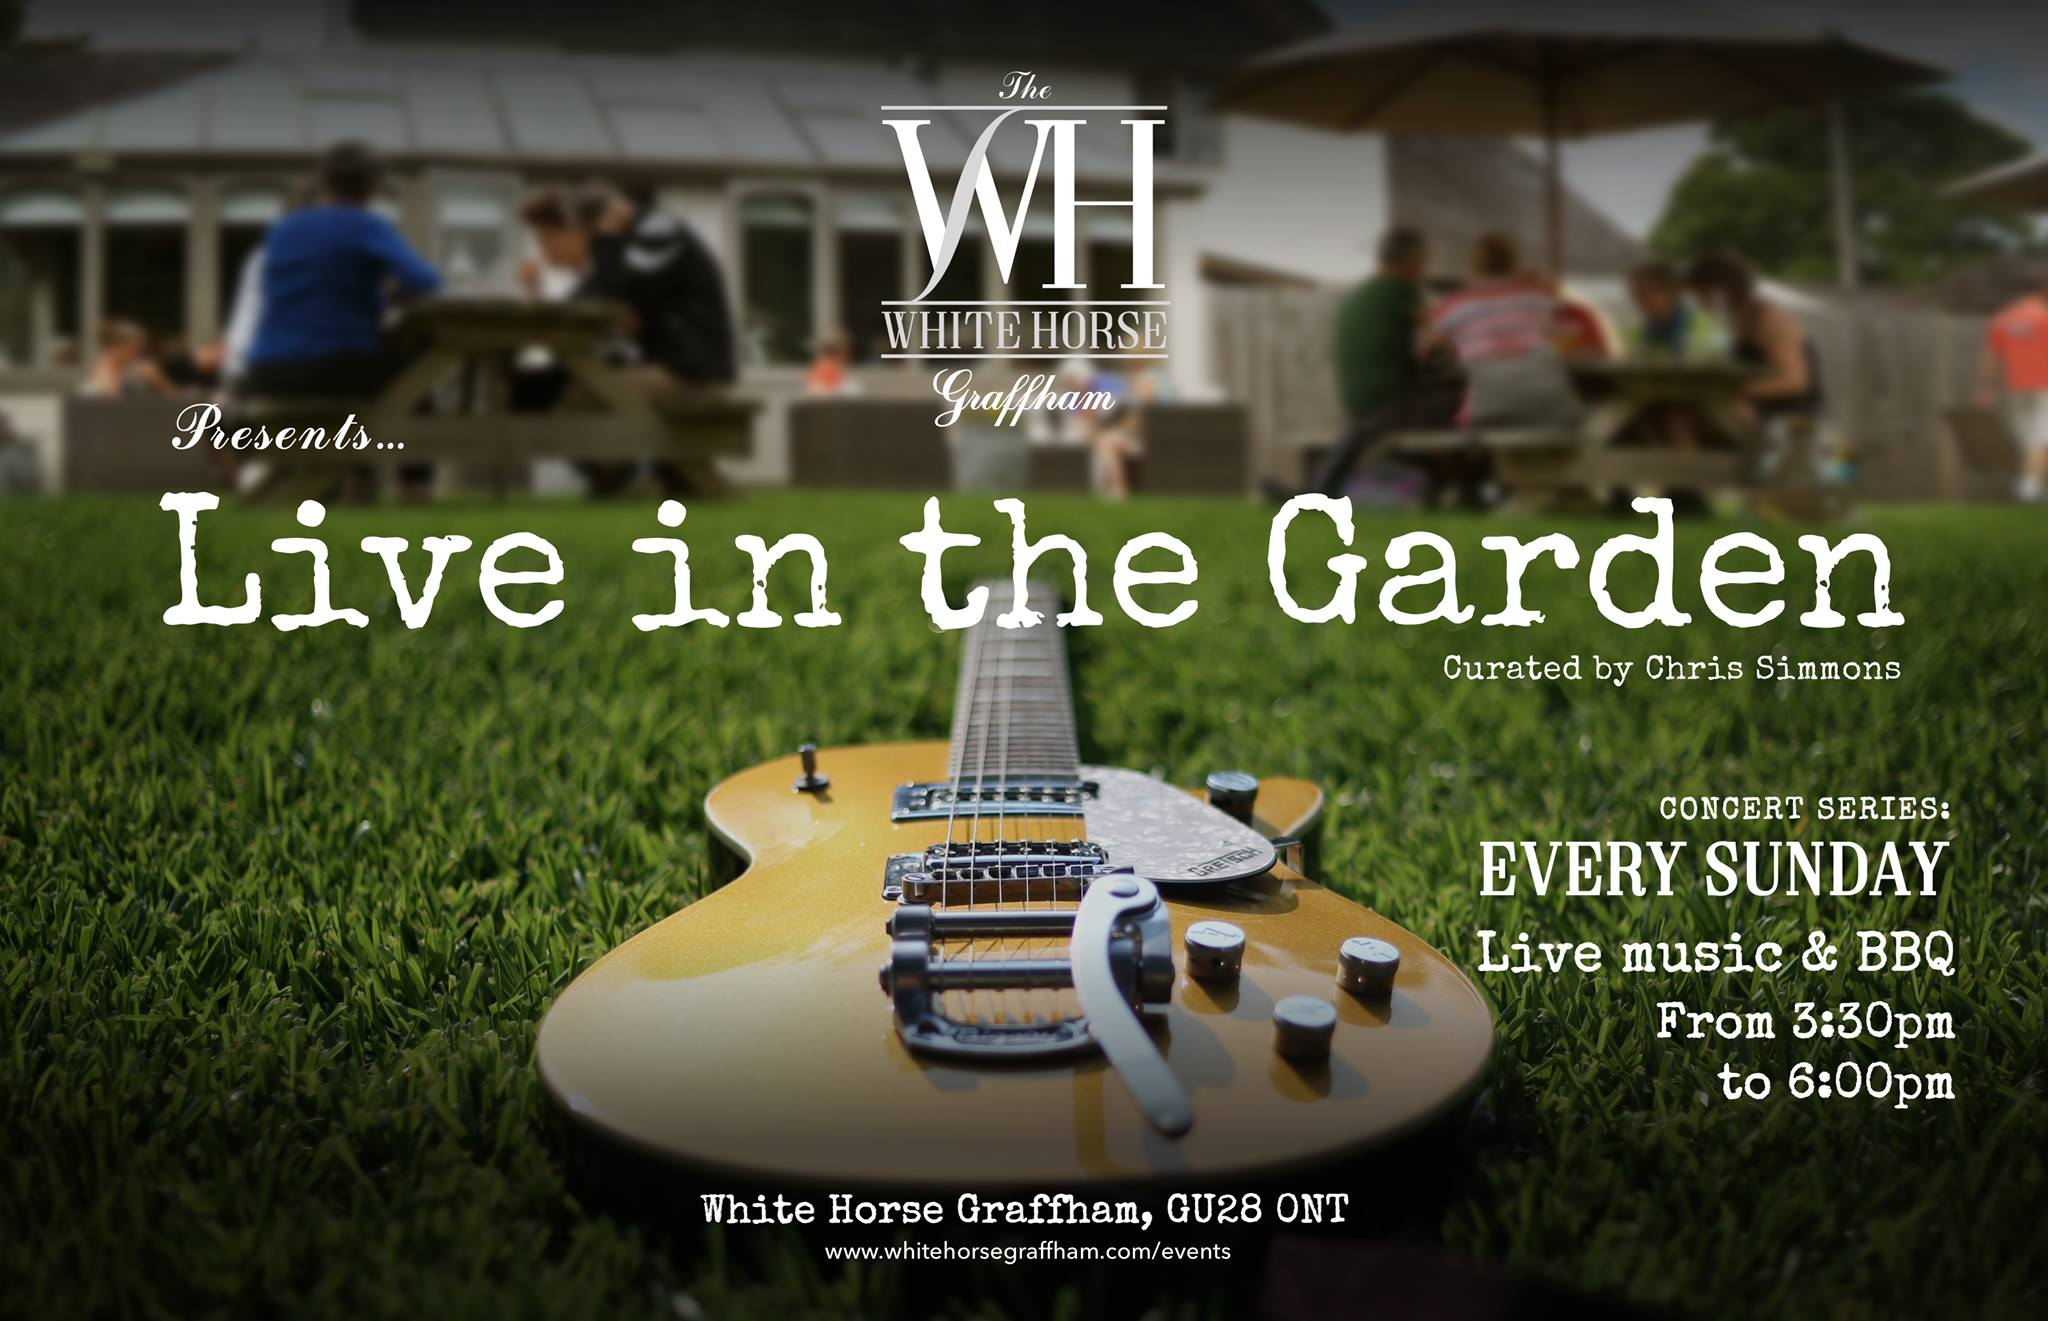 Concert Series: Live in the Garden at the White Horse Graffham